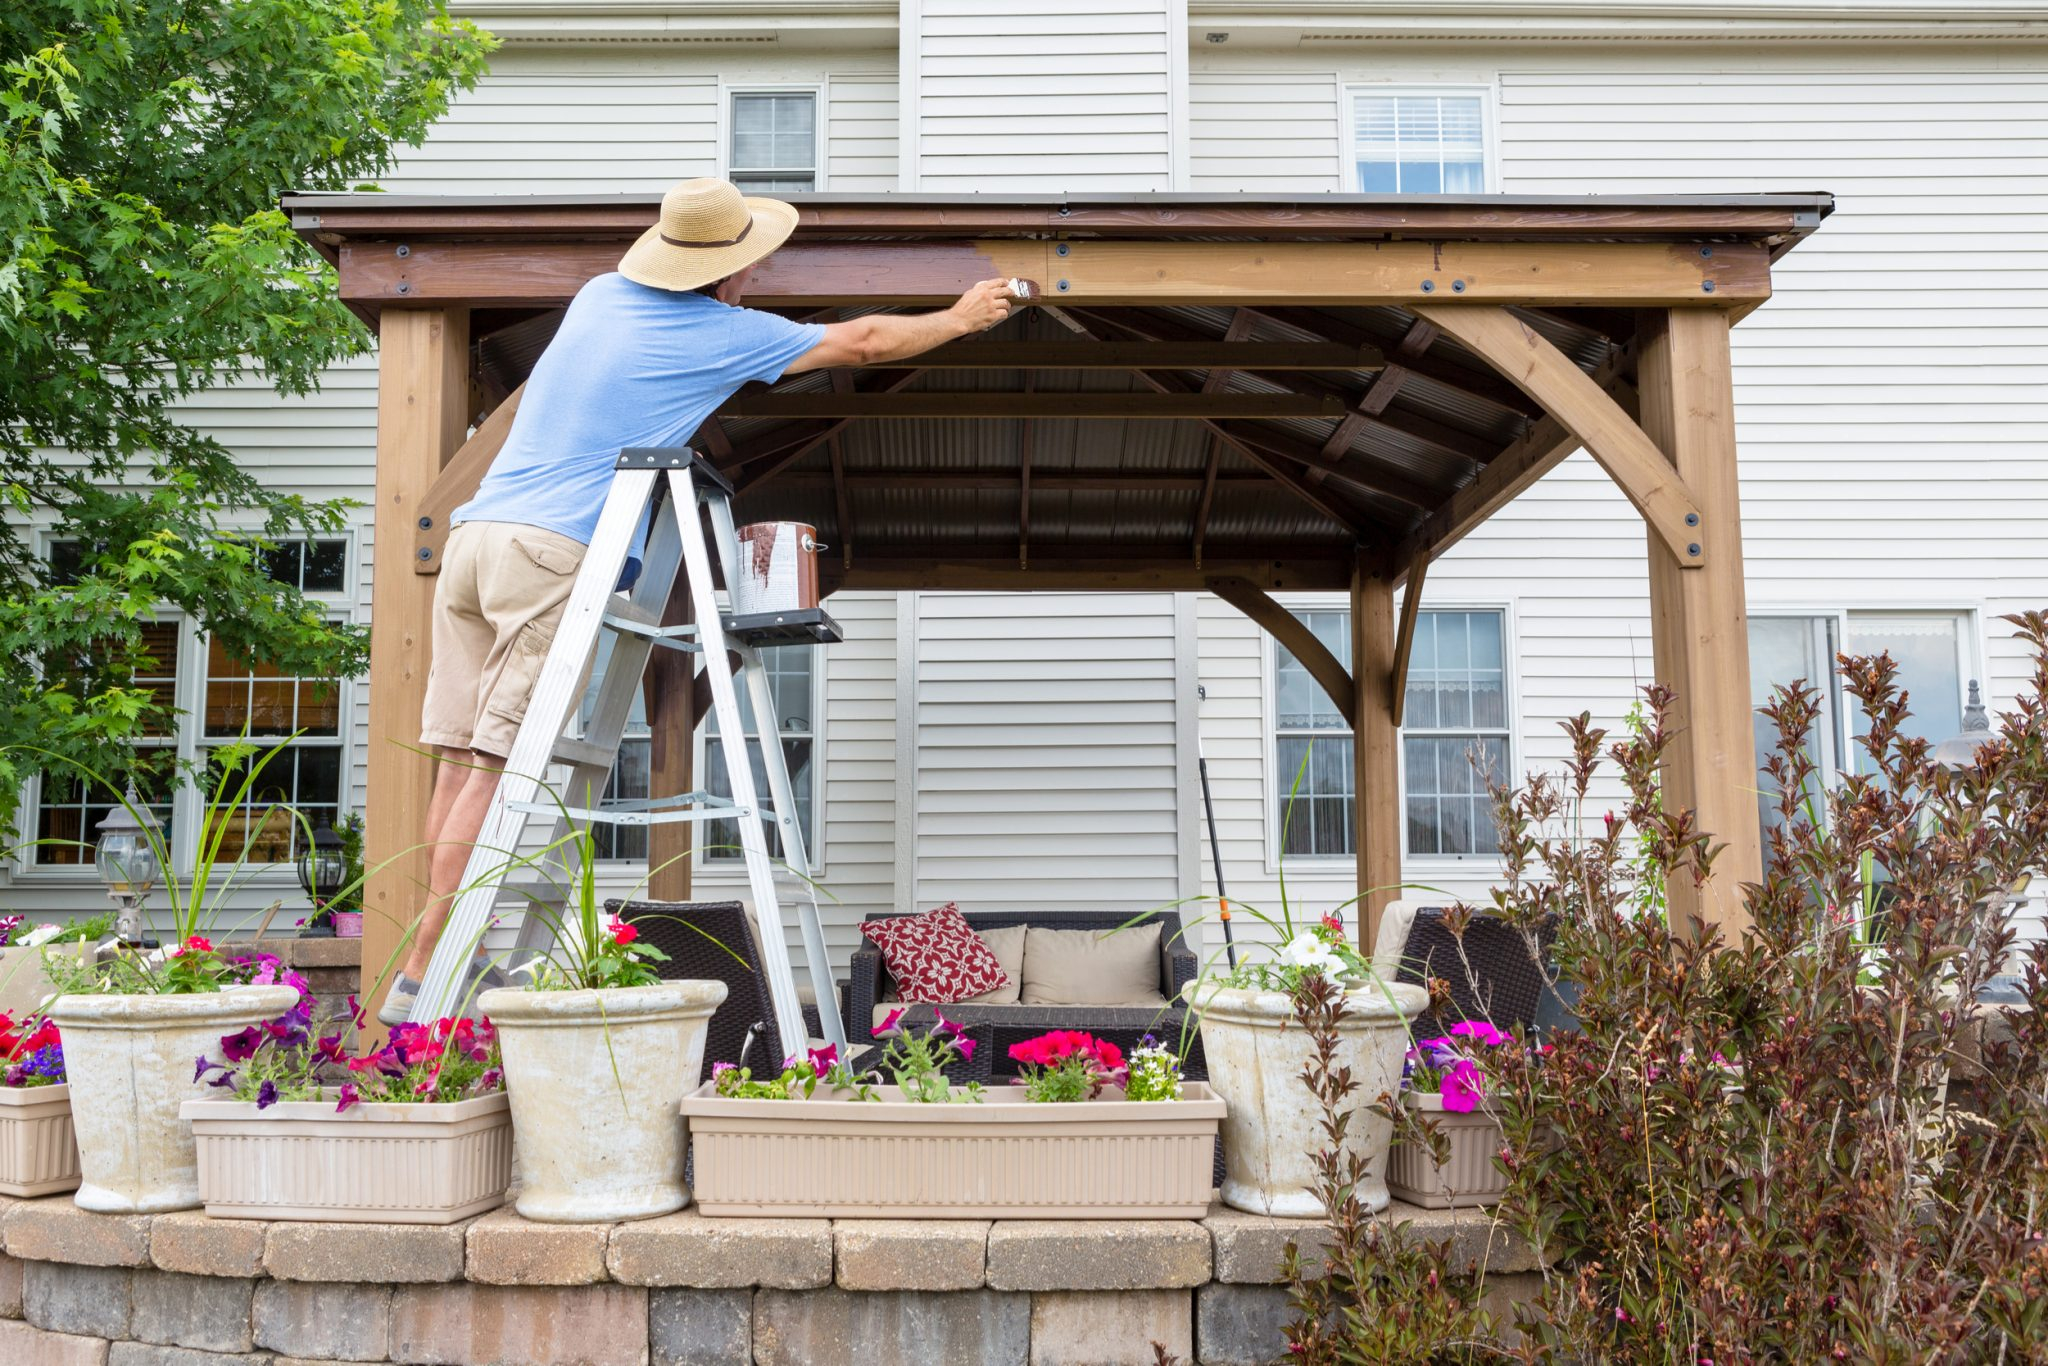 25 Patio Shade Ideas For Your Backyard Install It Direct throughout Shade Ideas For Backyard